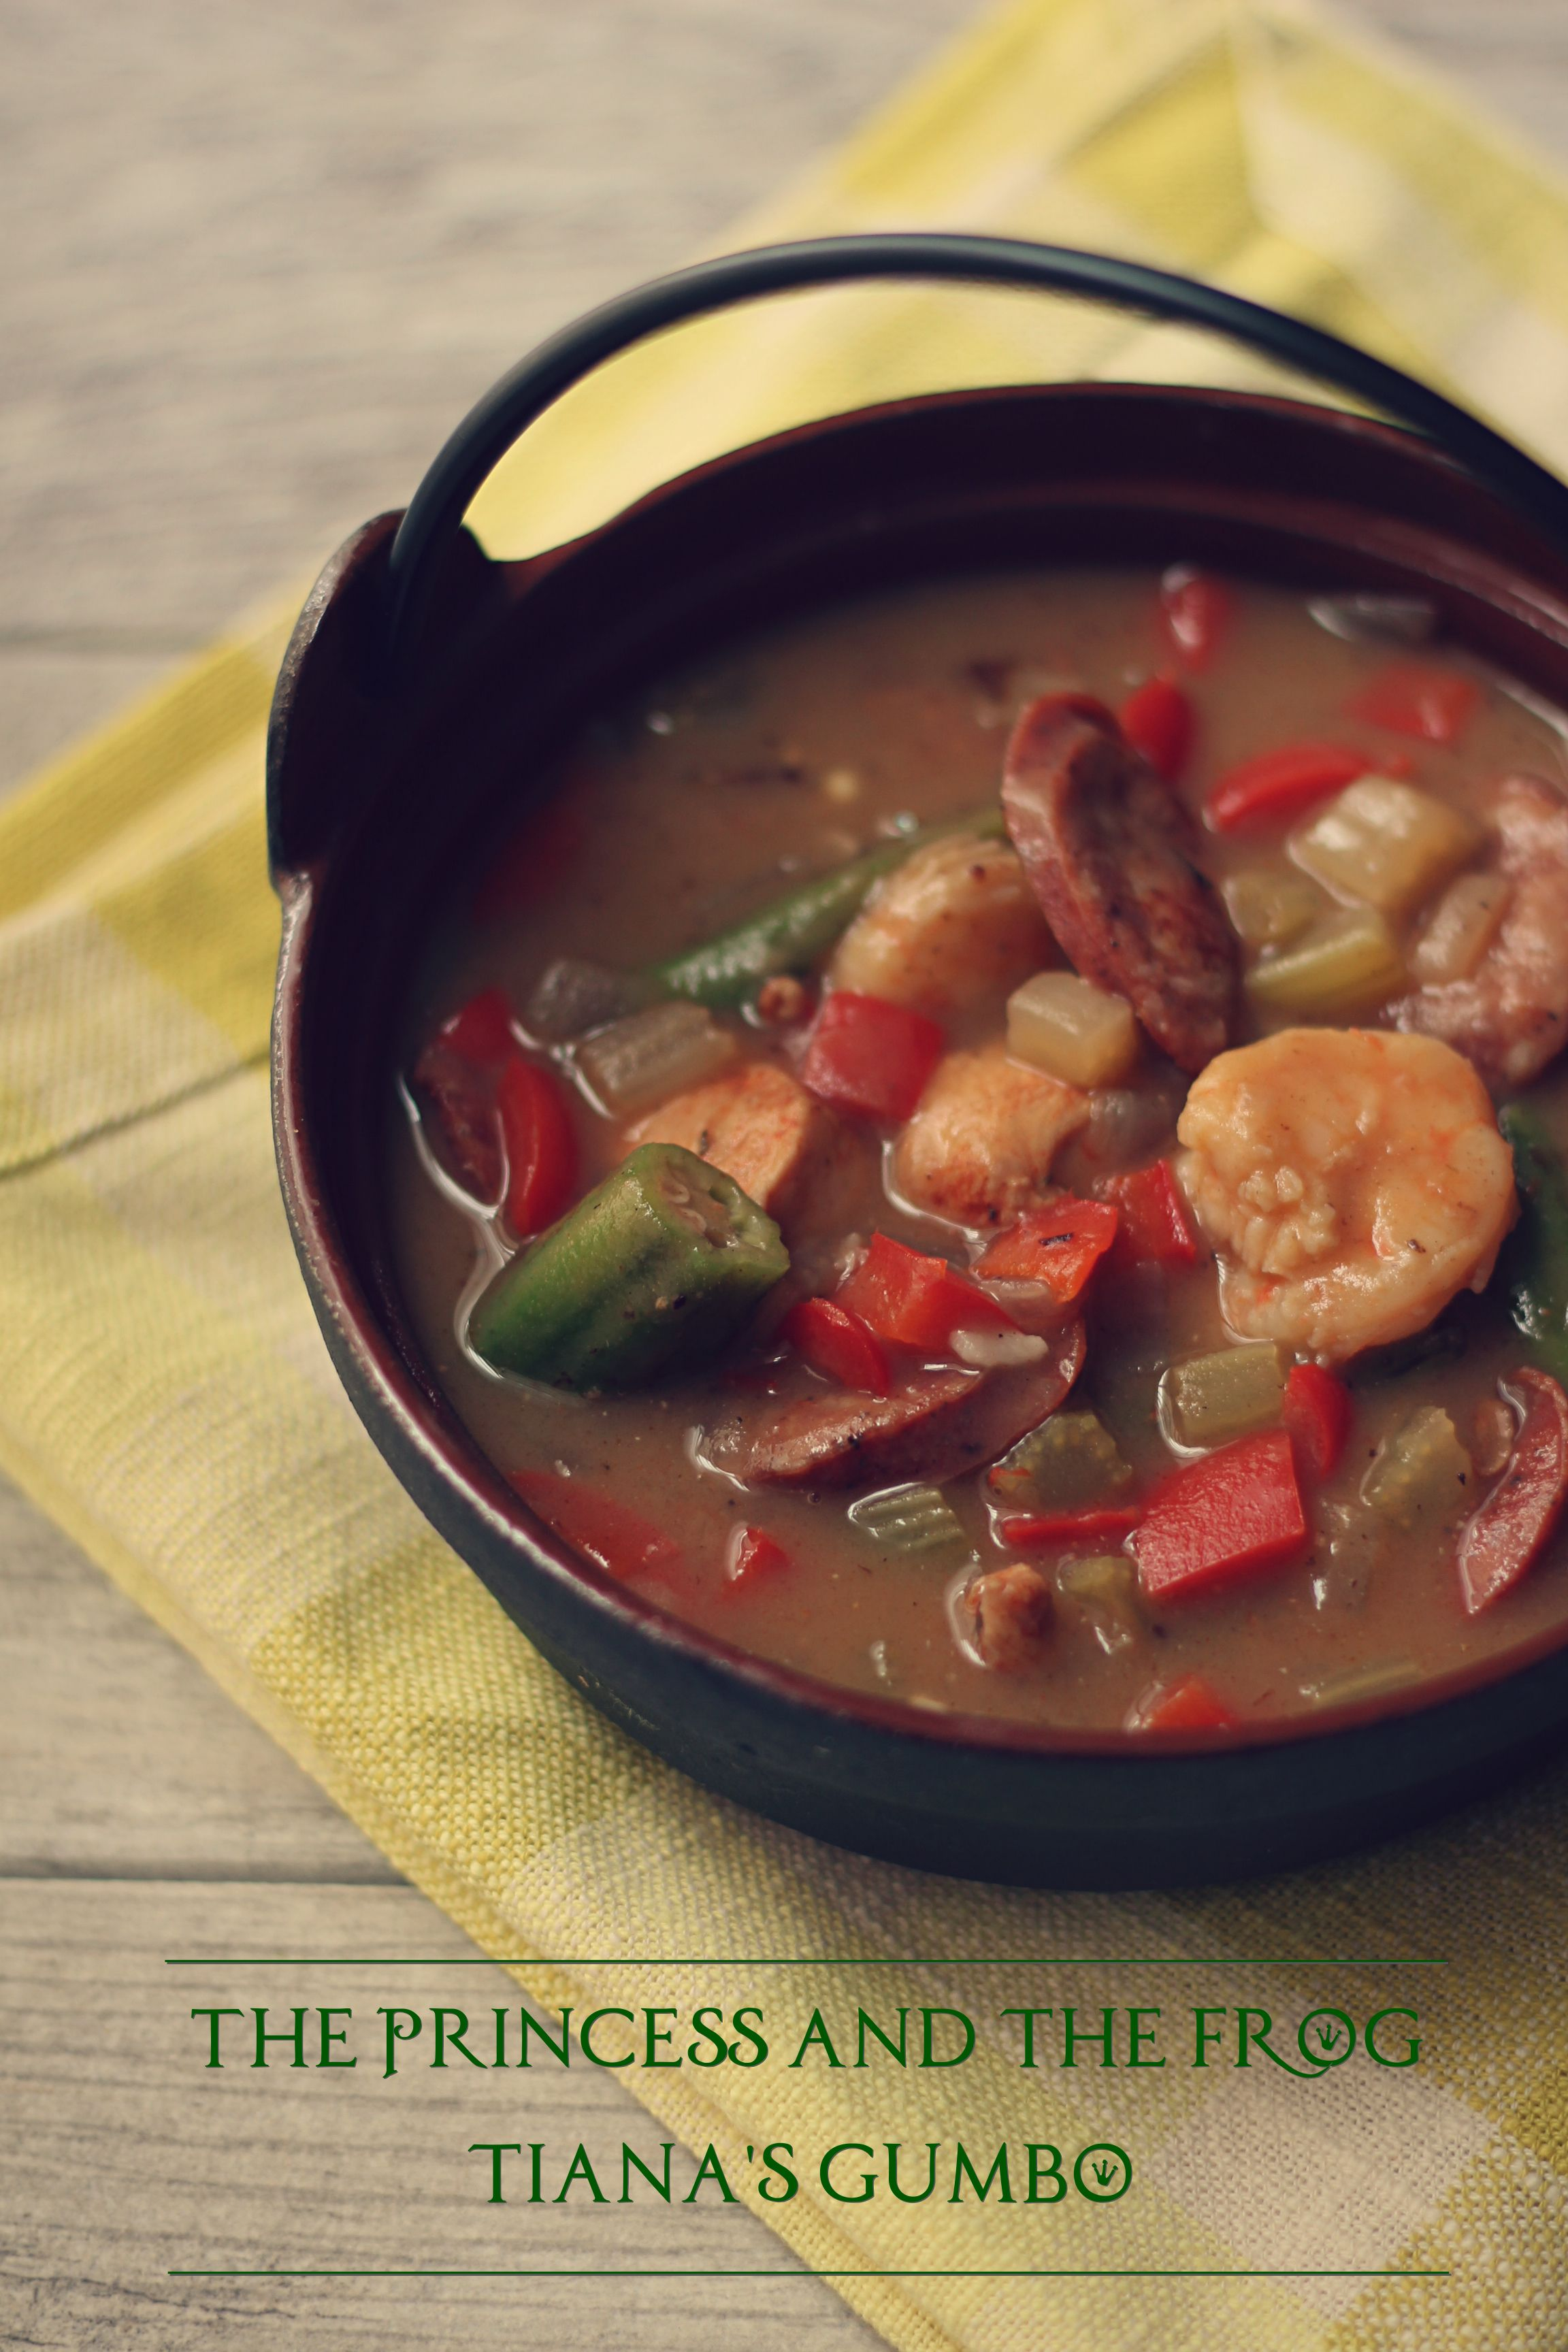 Dianas famous gumbo inspired by disneys the princess and